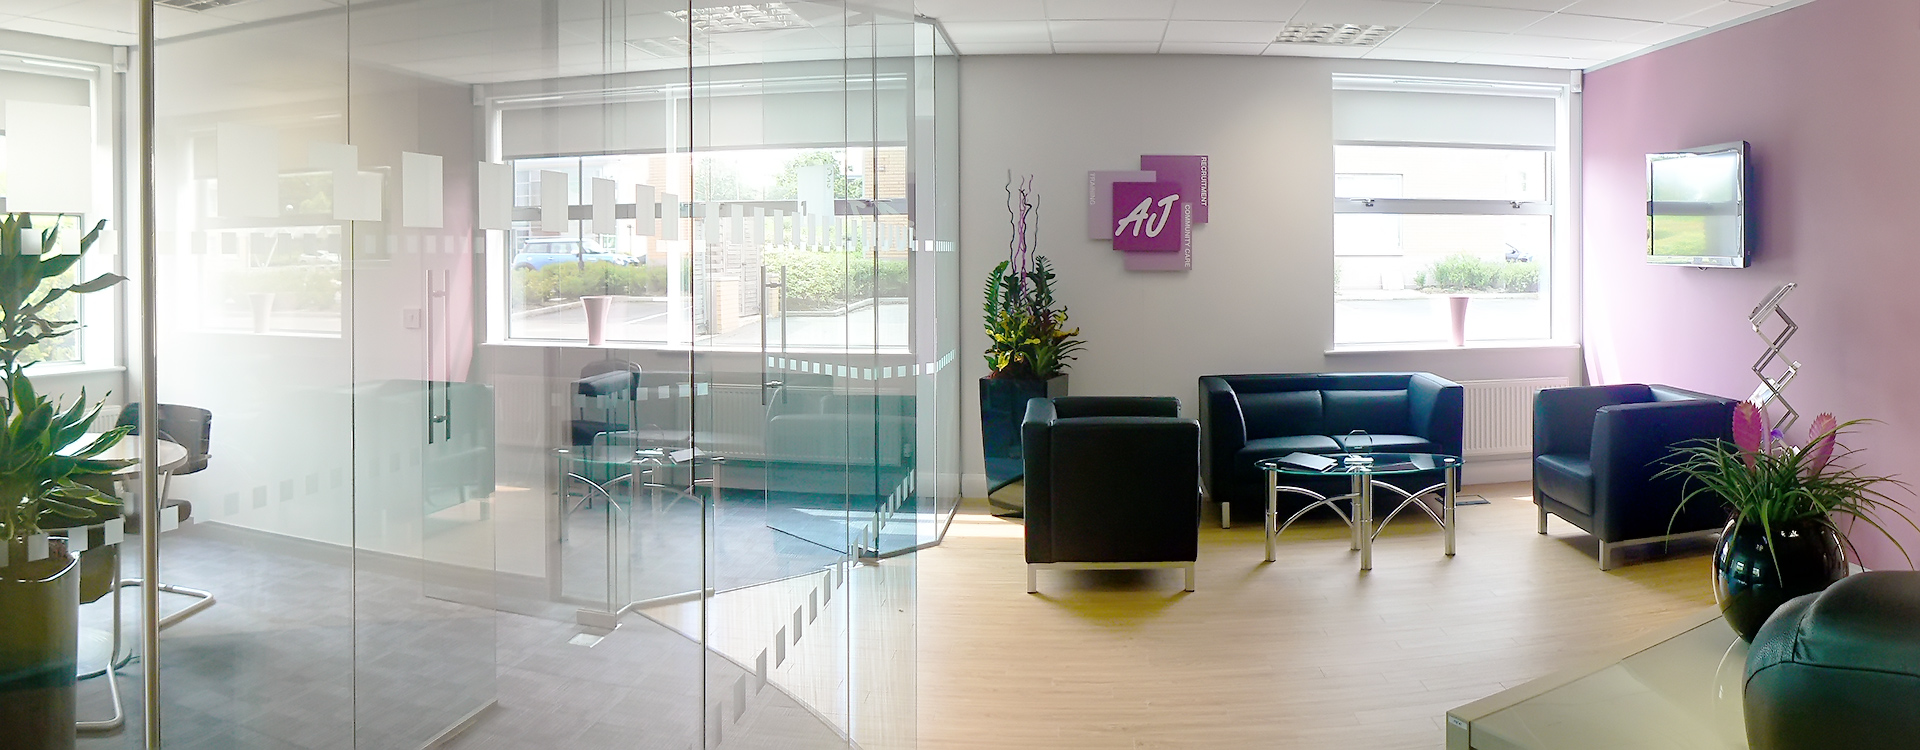 Our office refurbishment services for Office refurbishment